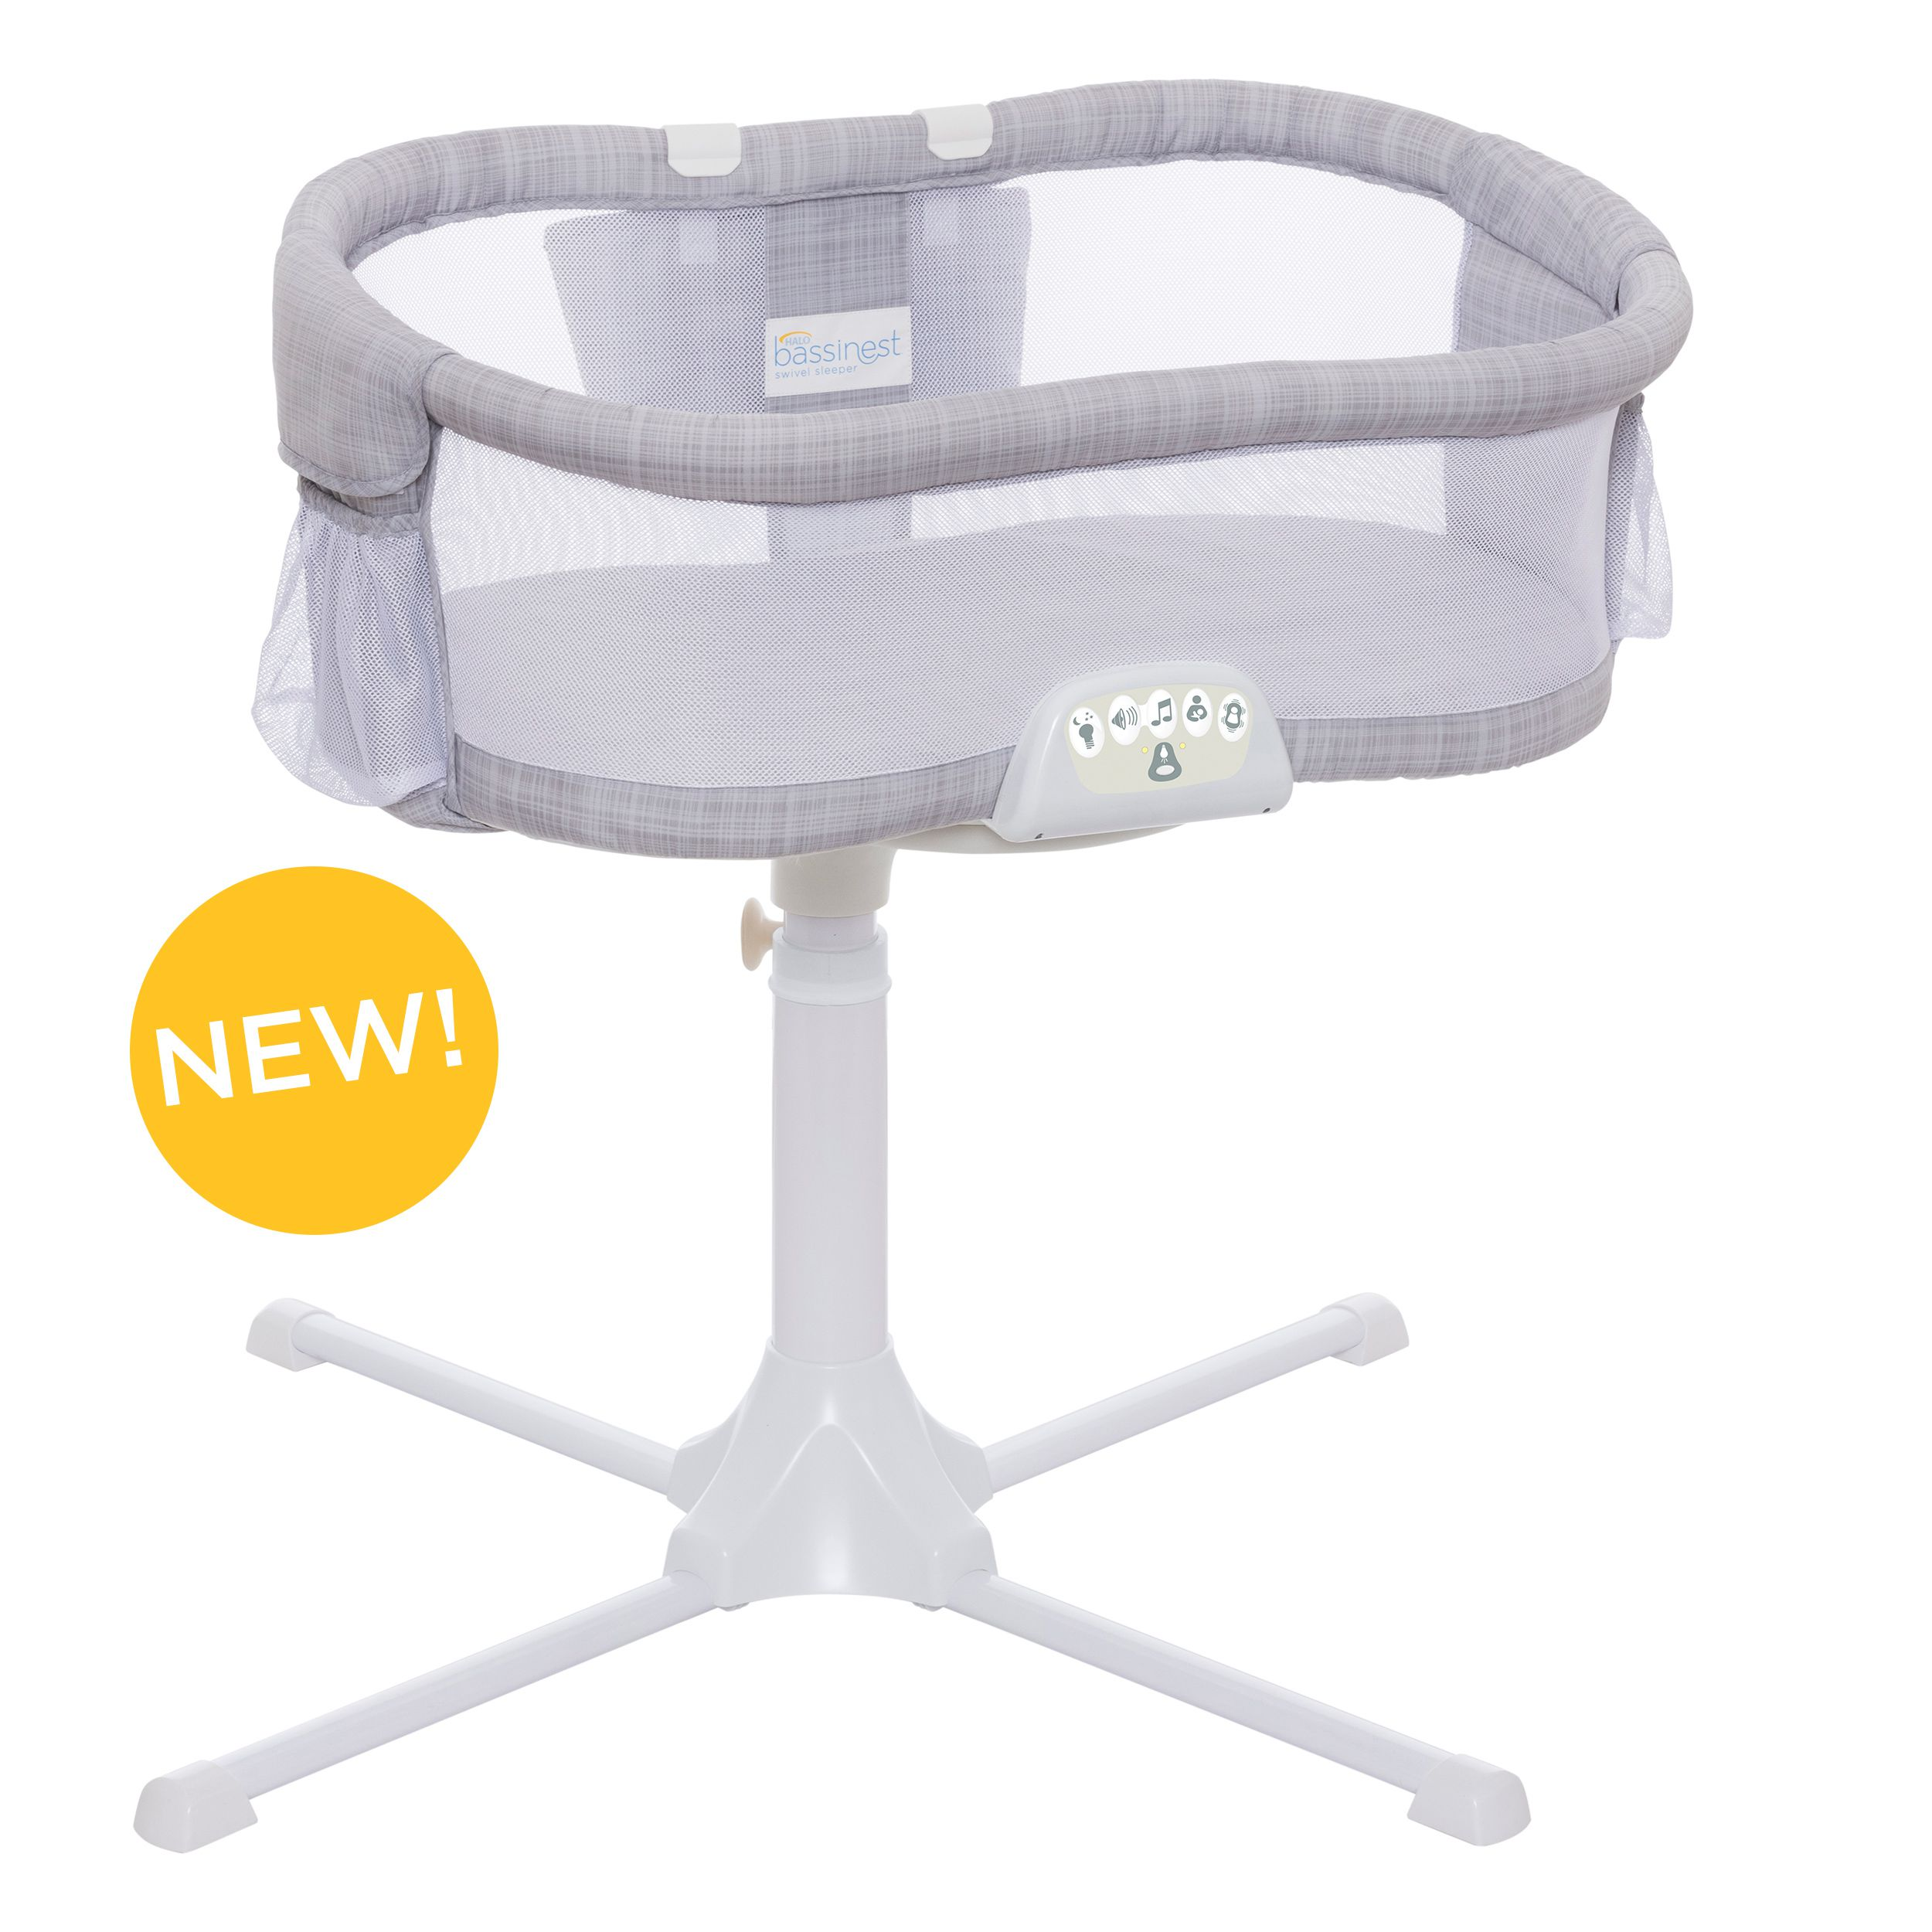 3d69888b142d How to Choose a CPC Certified Bassinet for Your Baby